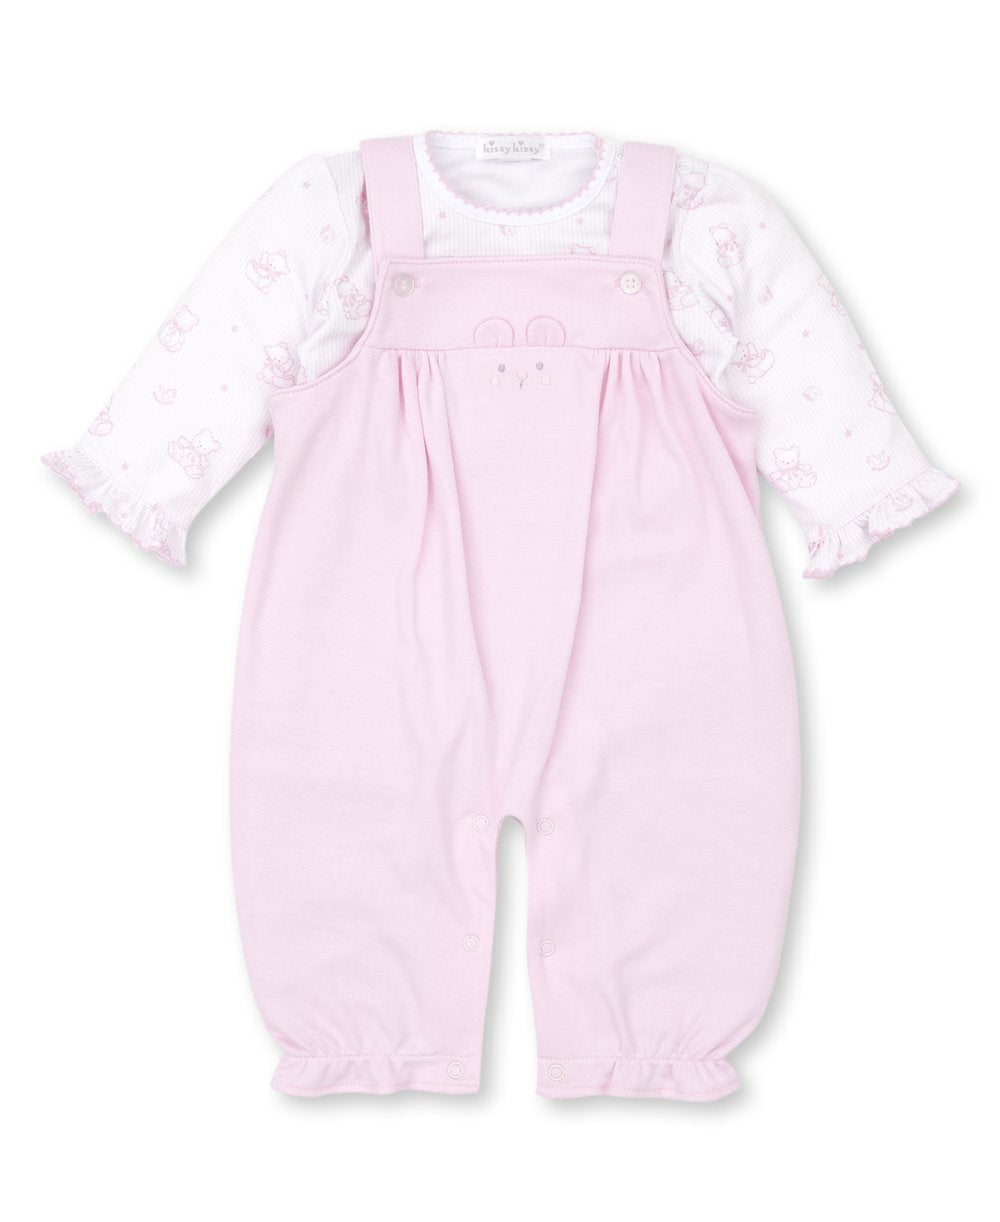 Kissy Kissy Bearly Believable Overall Set